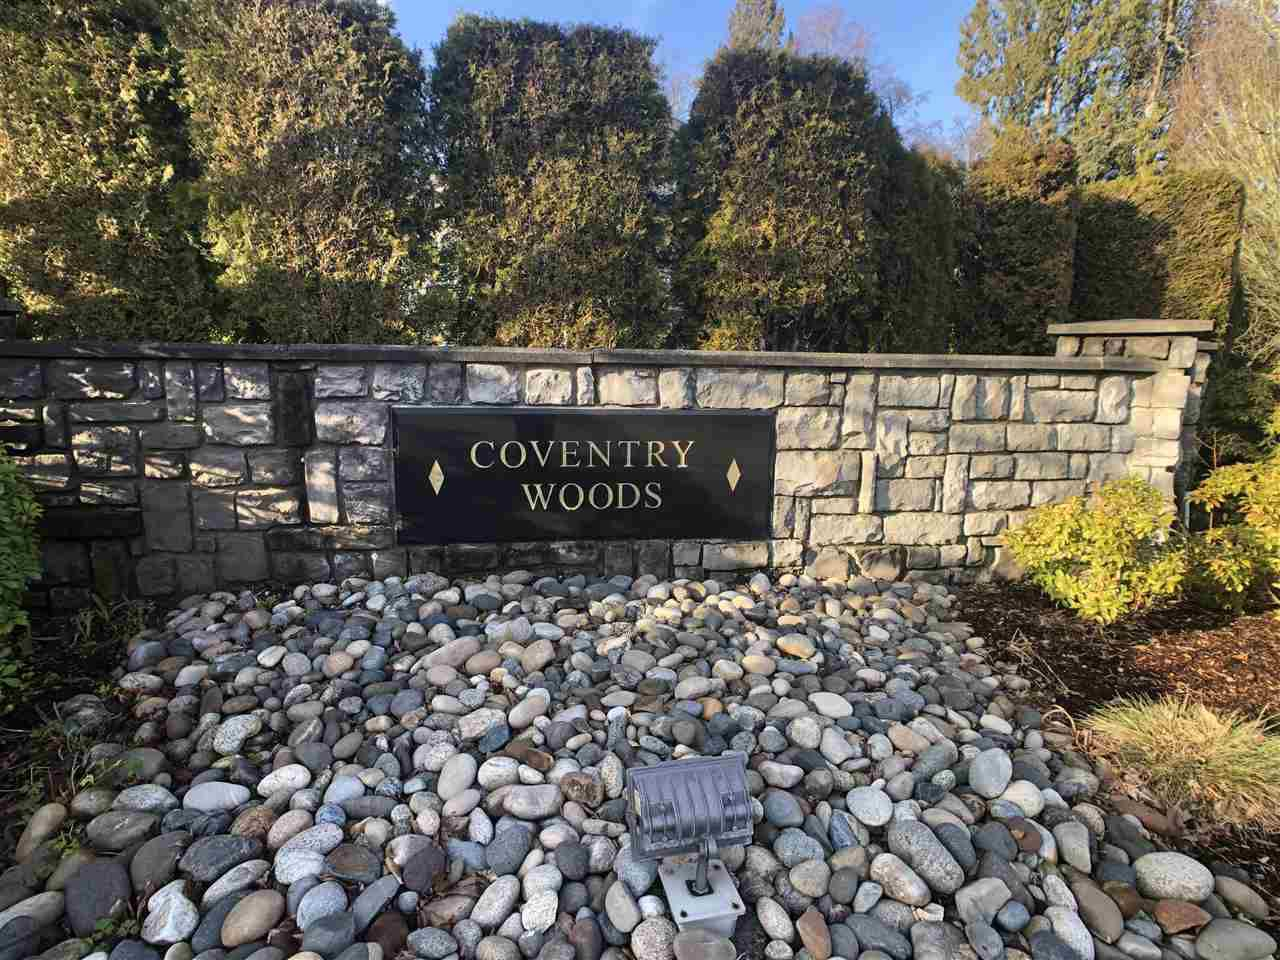 """Main Photo: 57 9025 216 Street in Langley: Walnut Grove Townhouse for sale in """"Coventry Woods"""" : MLS®# R2330566"""